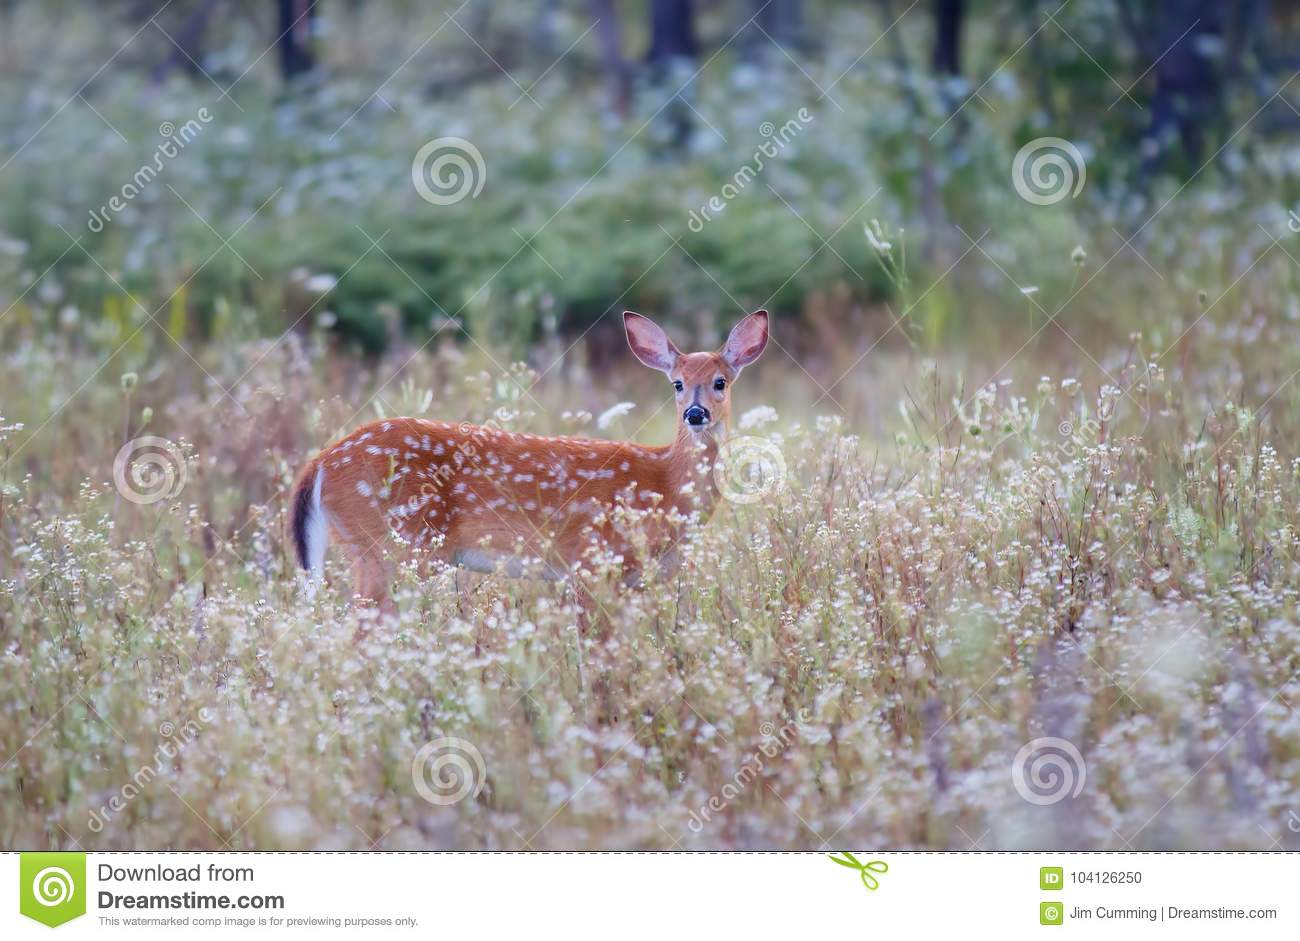 White-tailed deer fawn (Odocoileus virginianus) in amongst the wildflowers